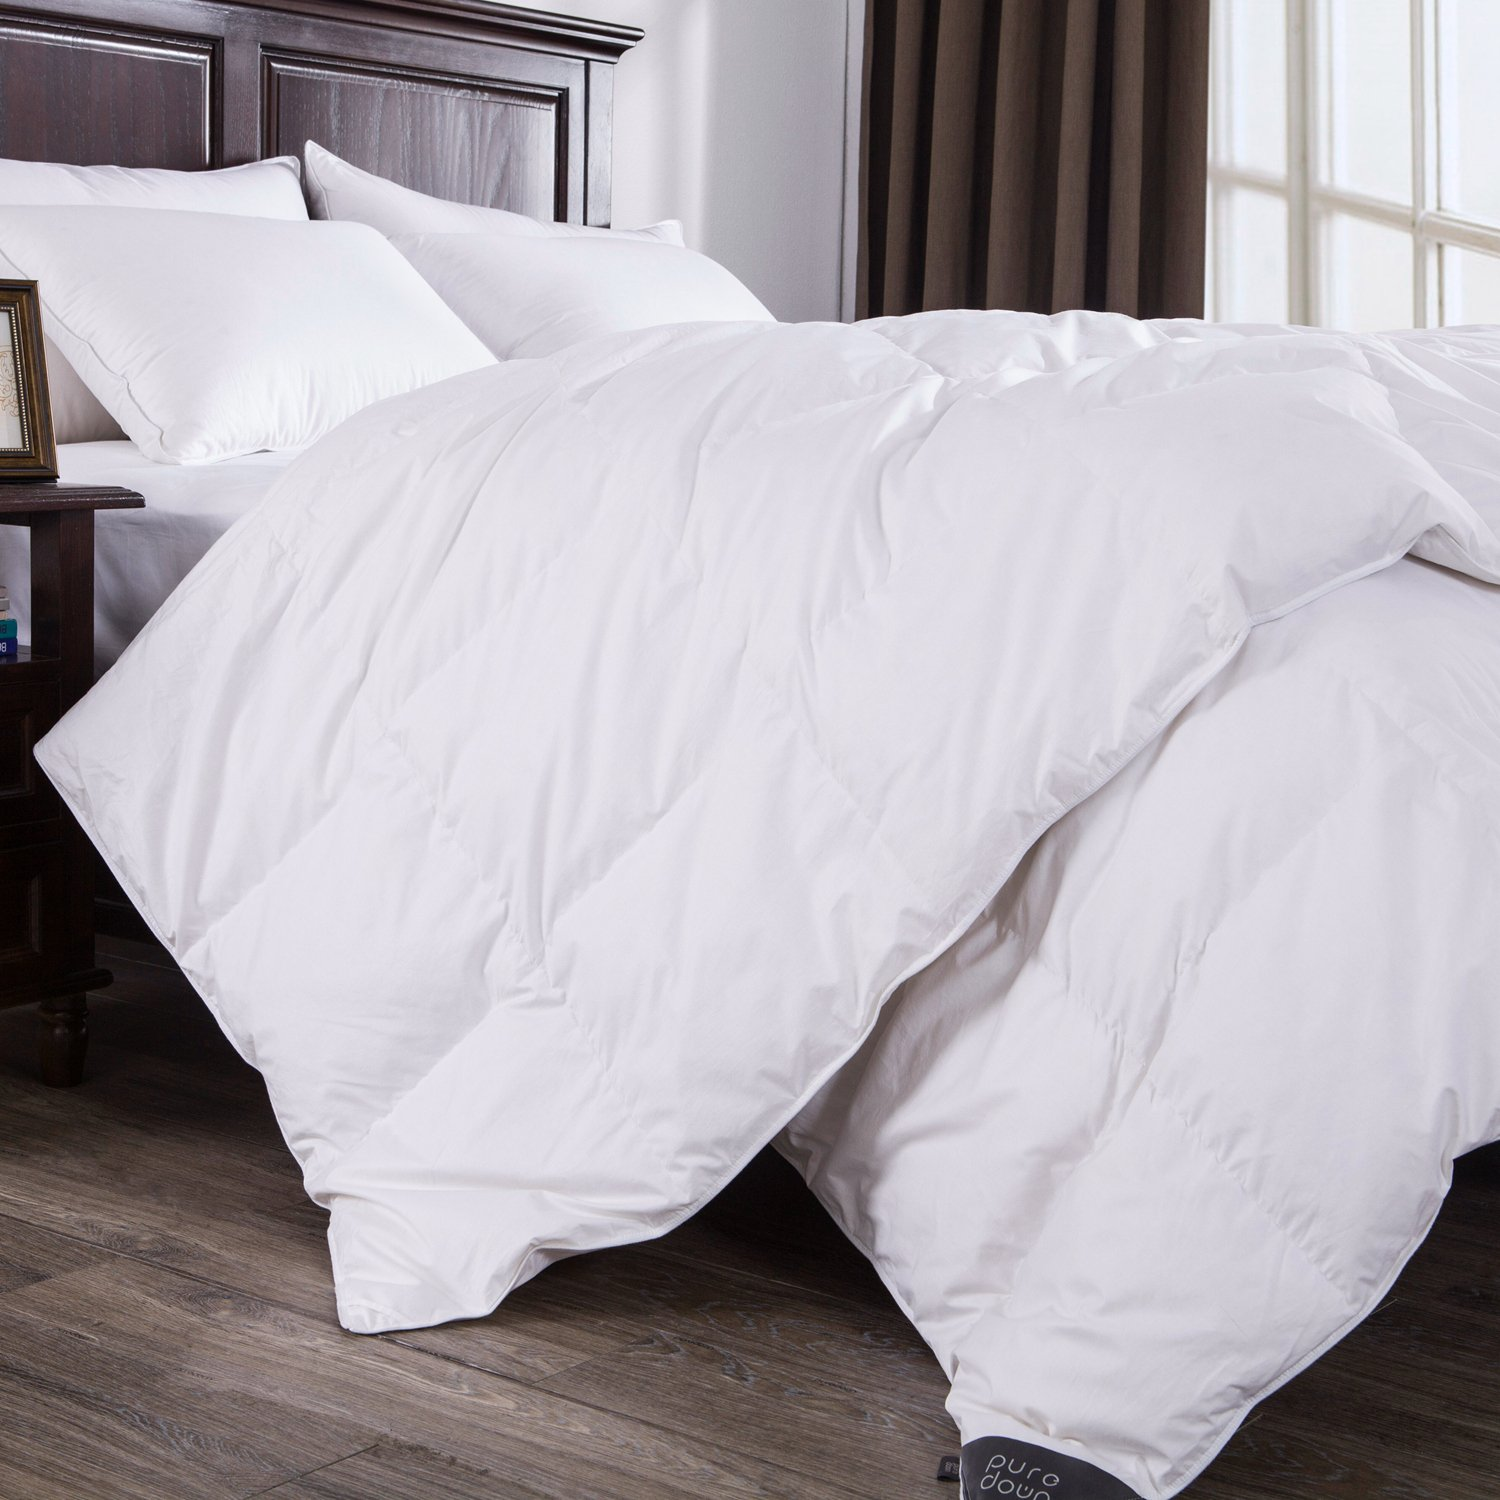 comforter hotel siberian white subcat size king for comforters less thread overstock bedding warmth down count extra oversized grand bath